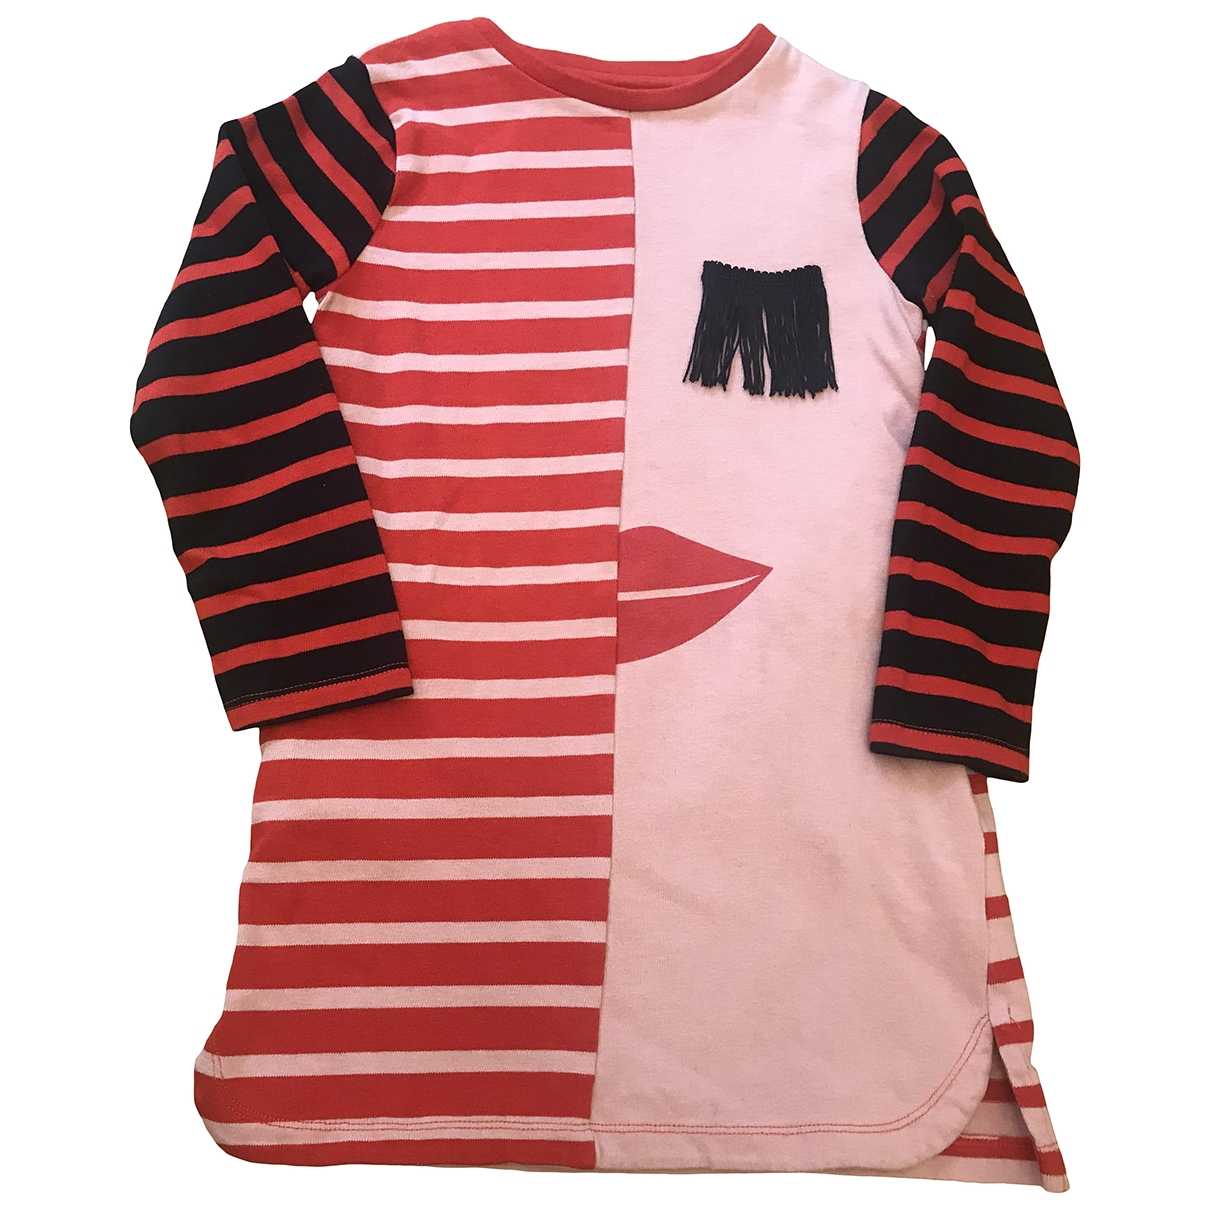 Stella Mccartney Kids \N Red Cotton dress for Kids 6 years - until 45 inches UK